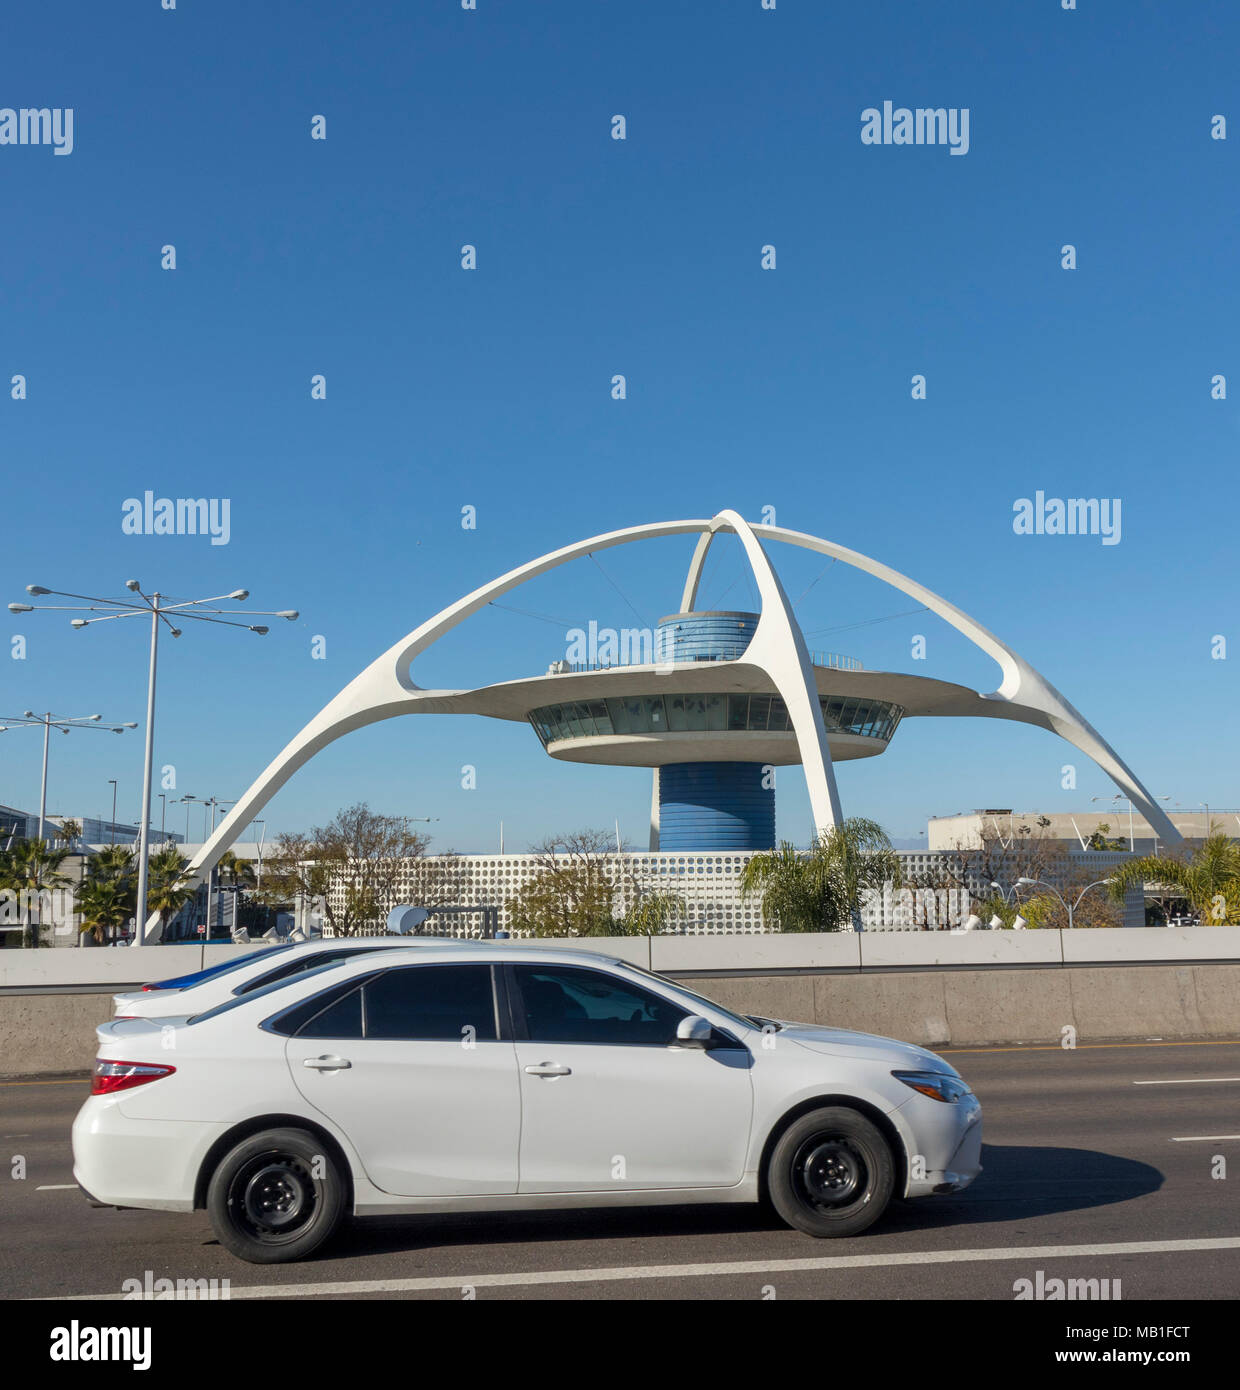 the Theme Building, LAX, Los Angeles airport, California, USA - Stock Image